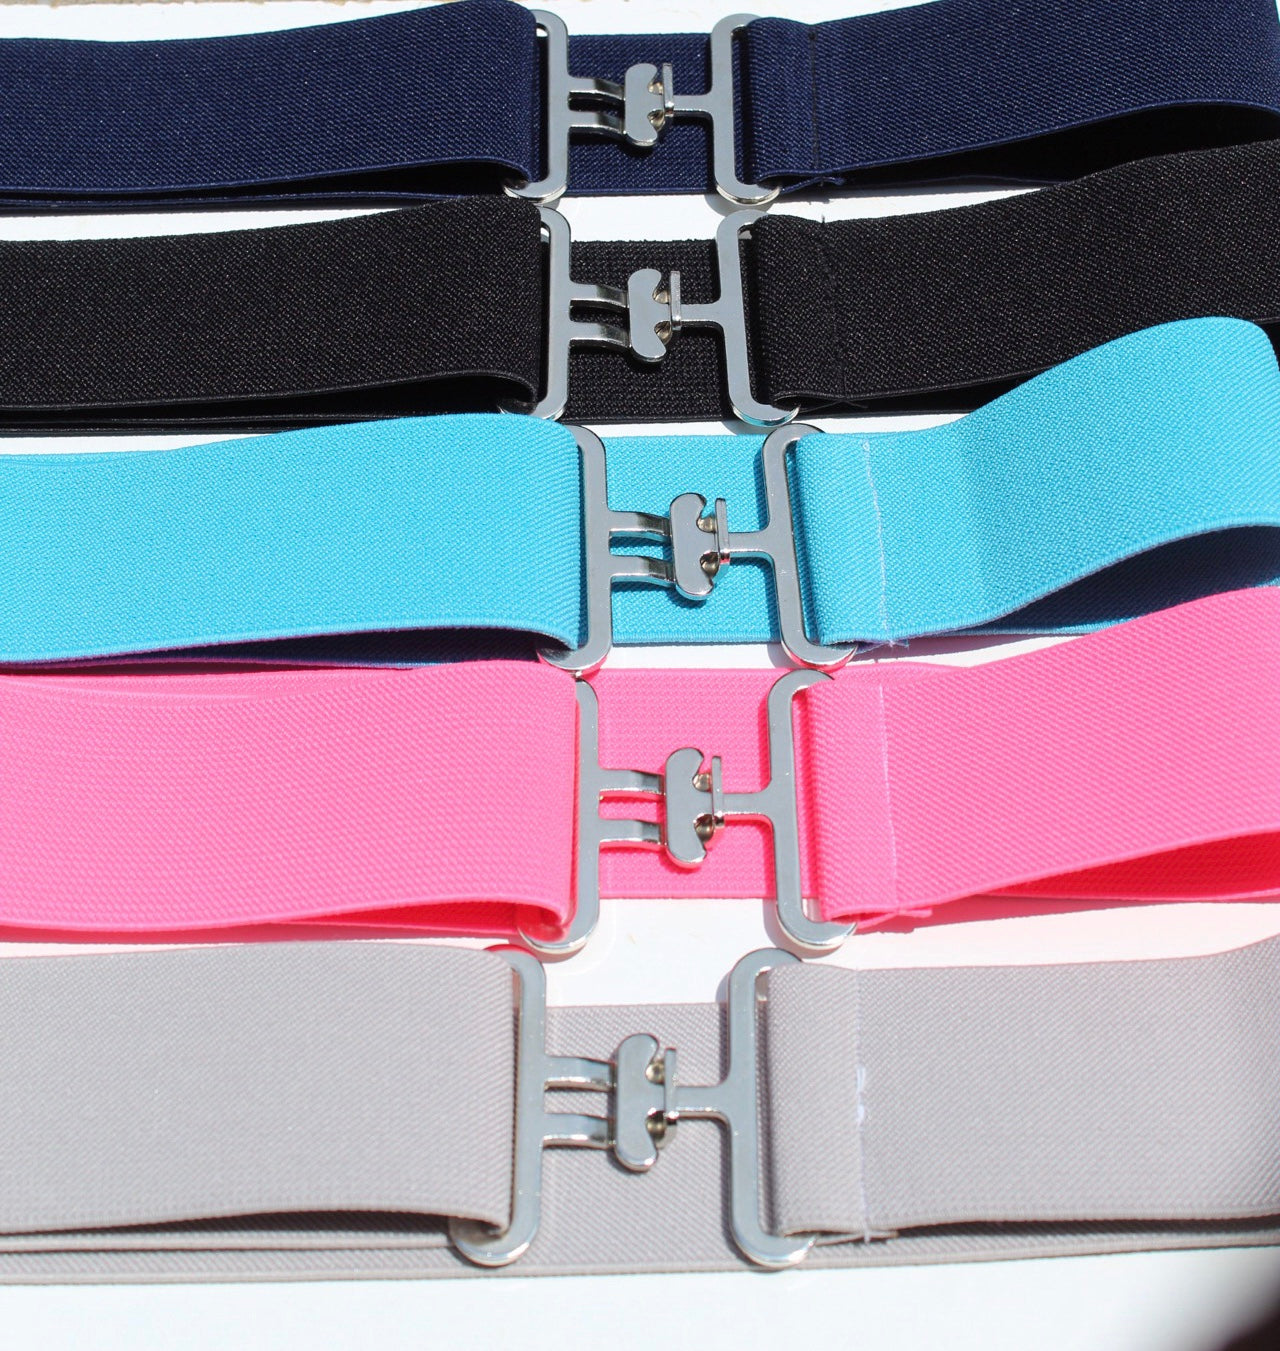 New Product - Belts